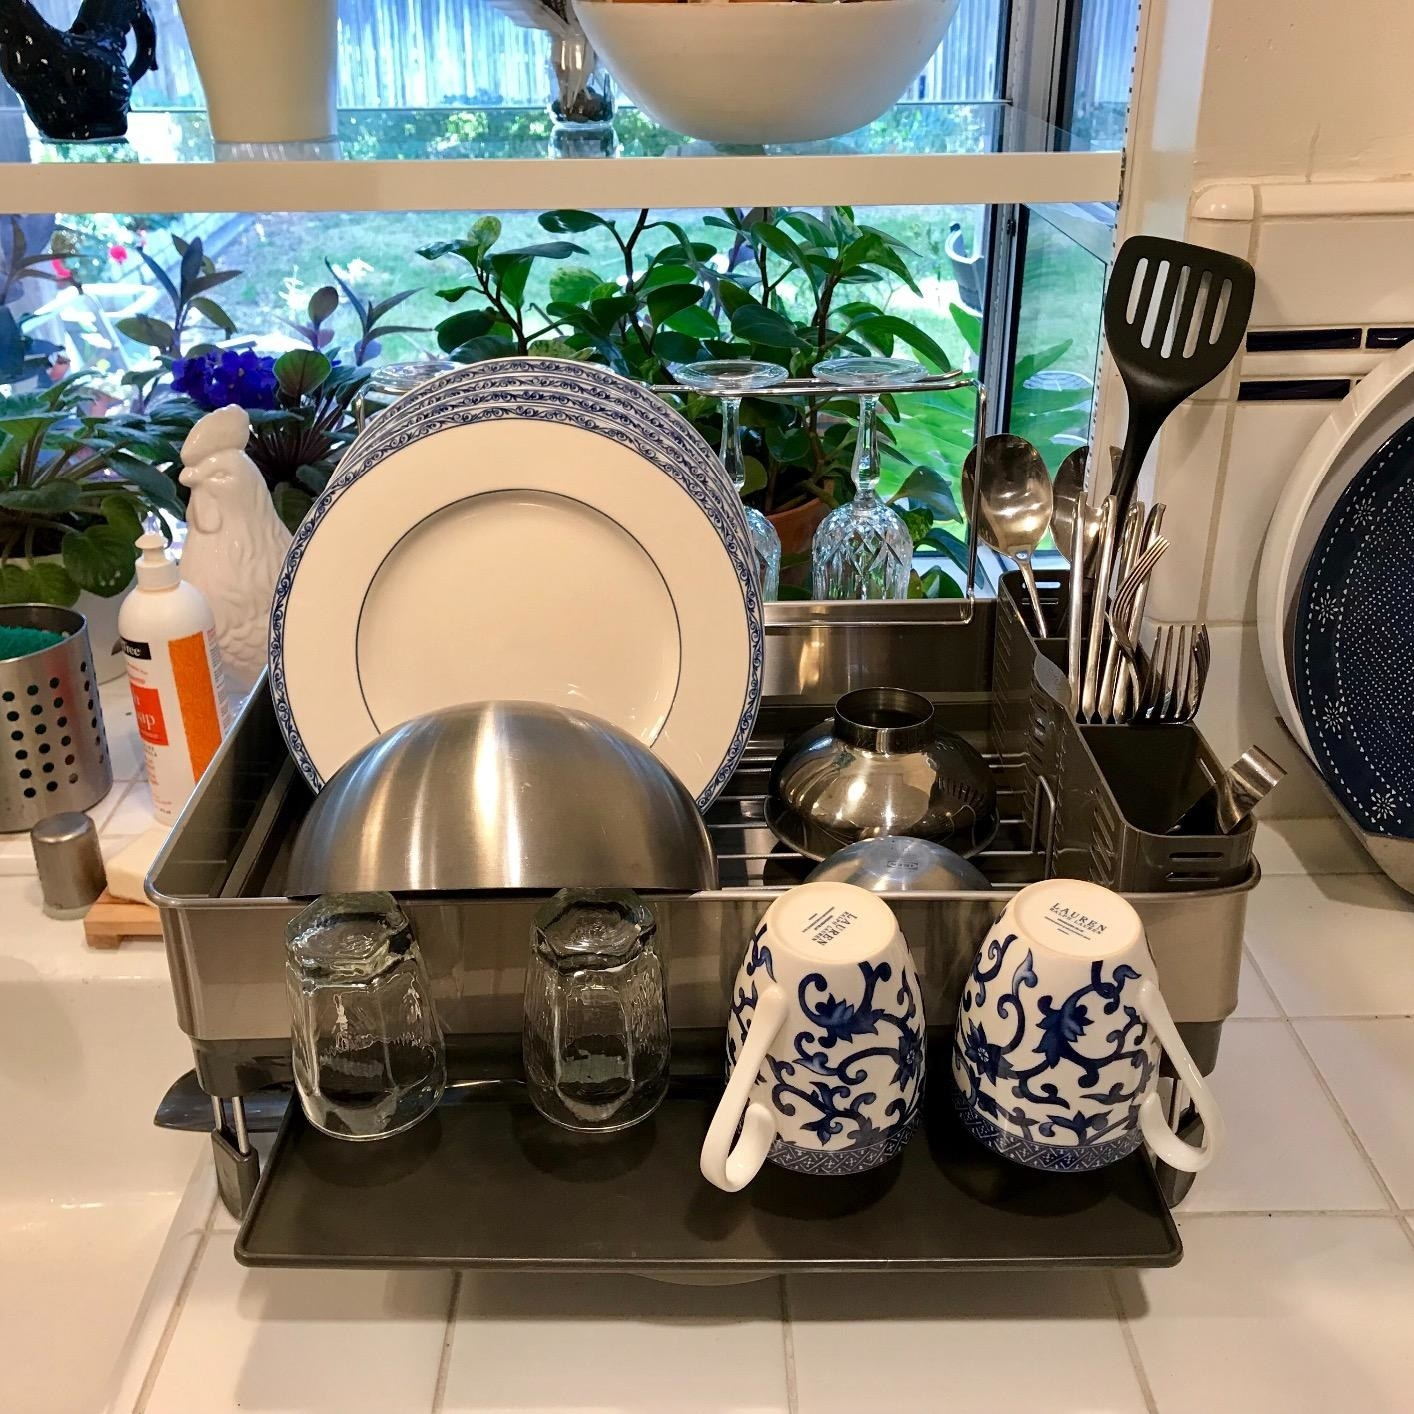 The dish rack, which has dedicated areas to dry dishes, silverware, cups and wine glasses